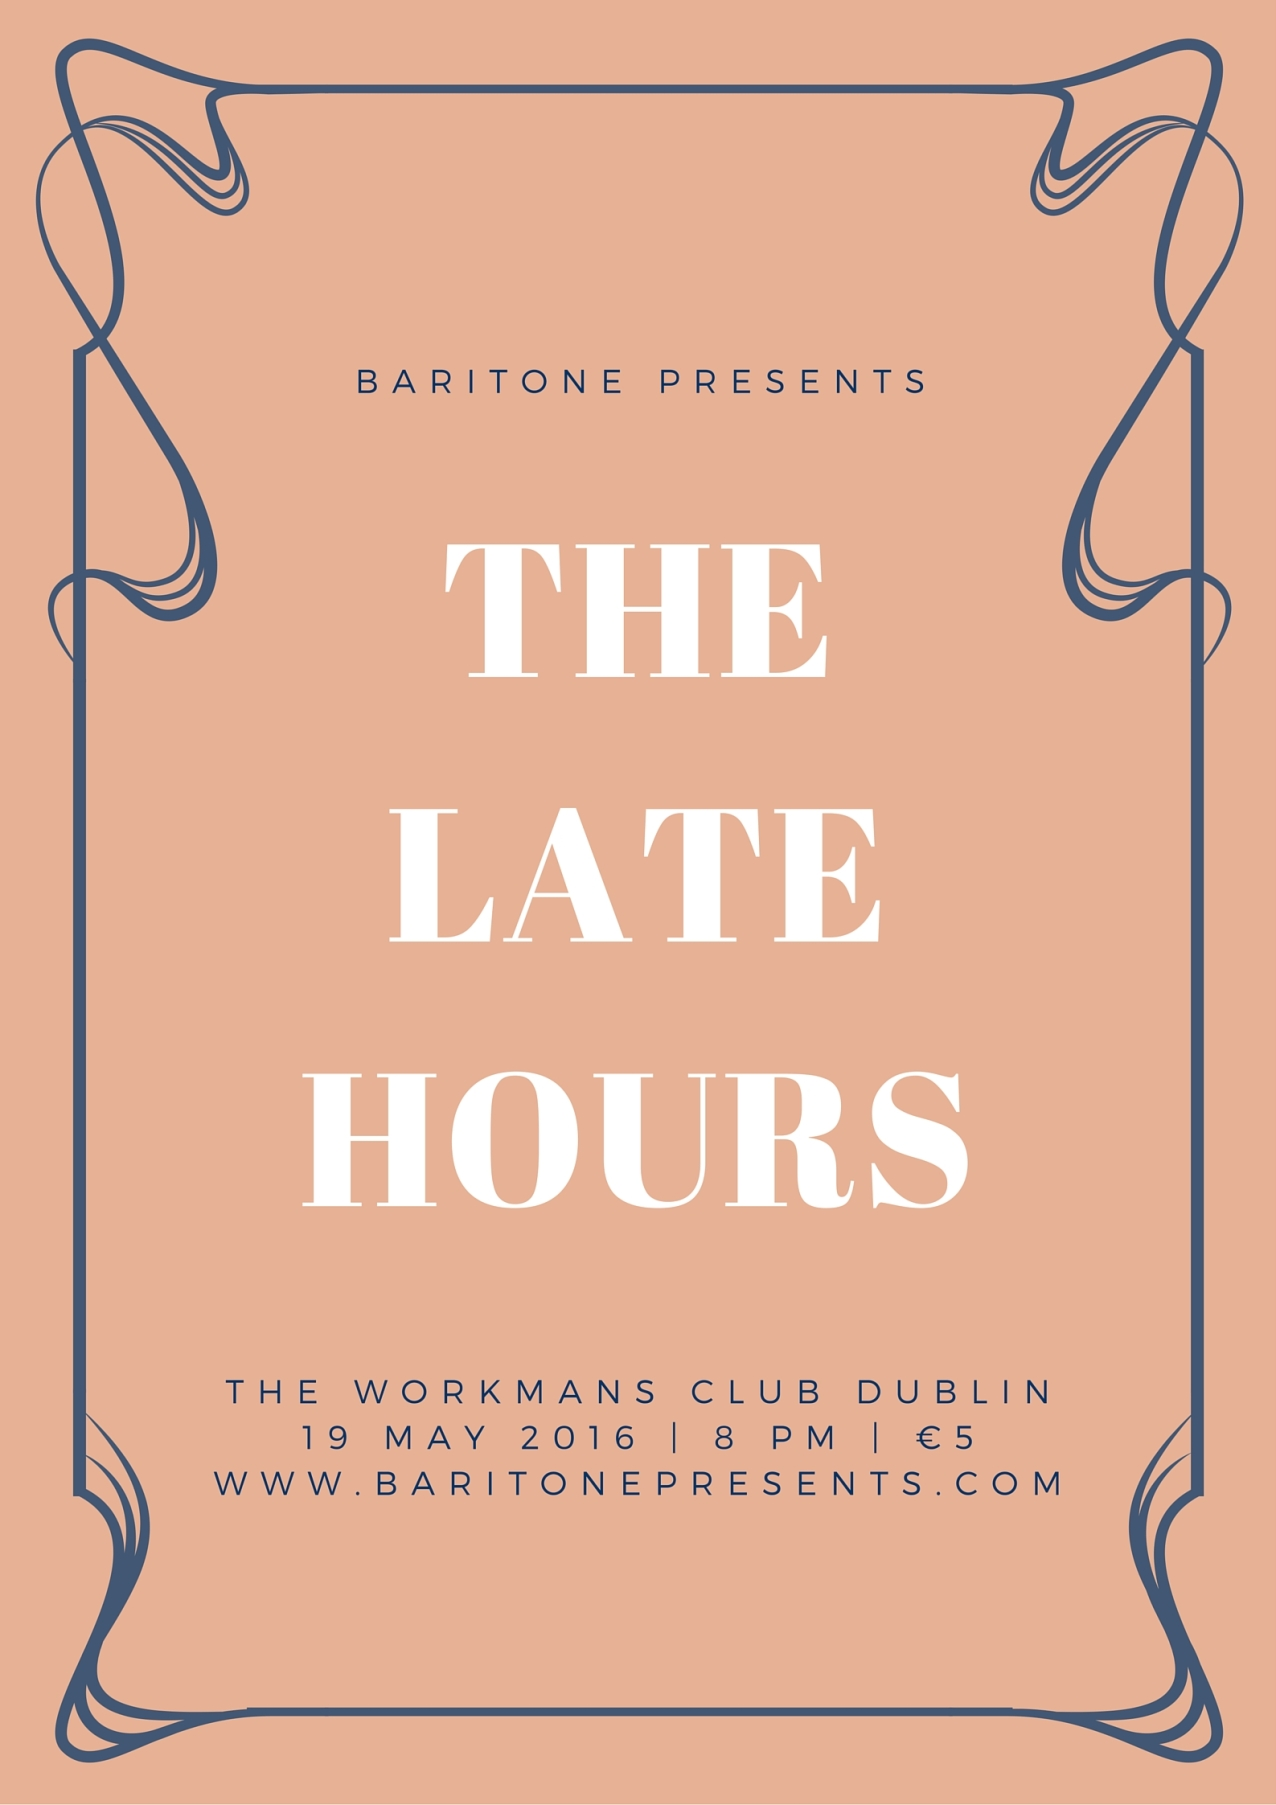 With 'The Late Hours', a duo project of guitar and vocals.